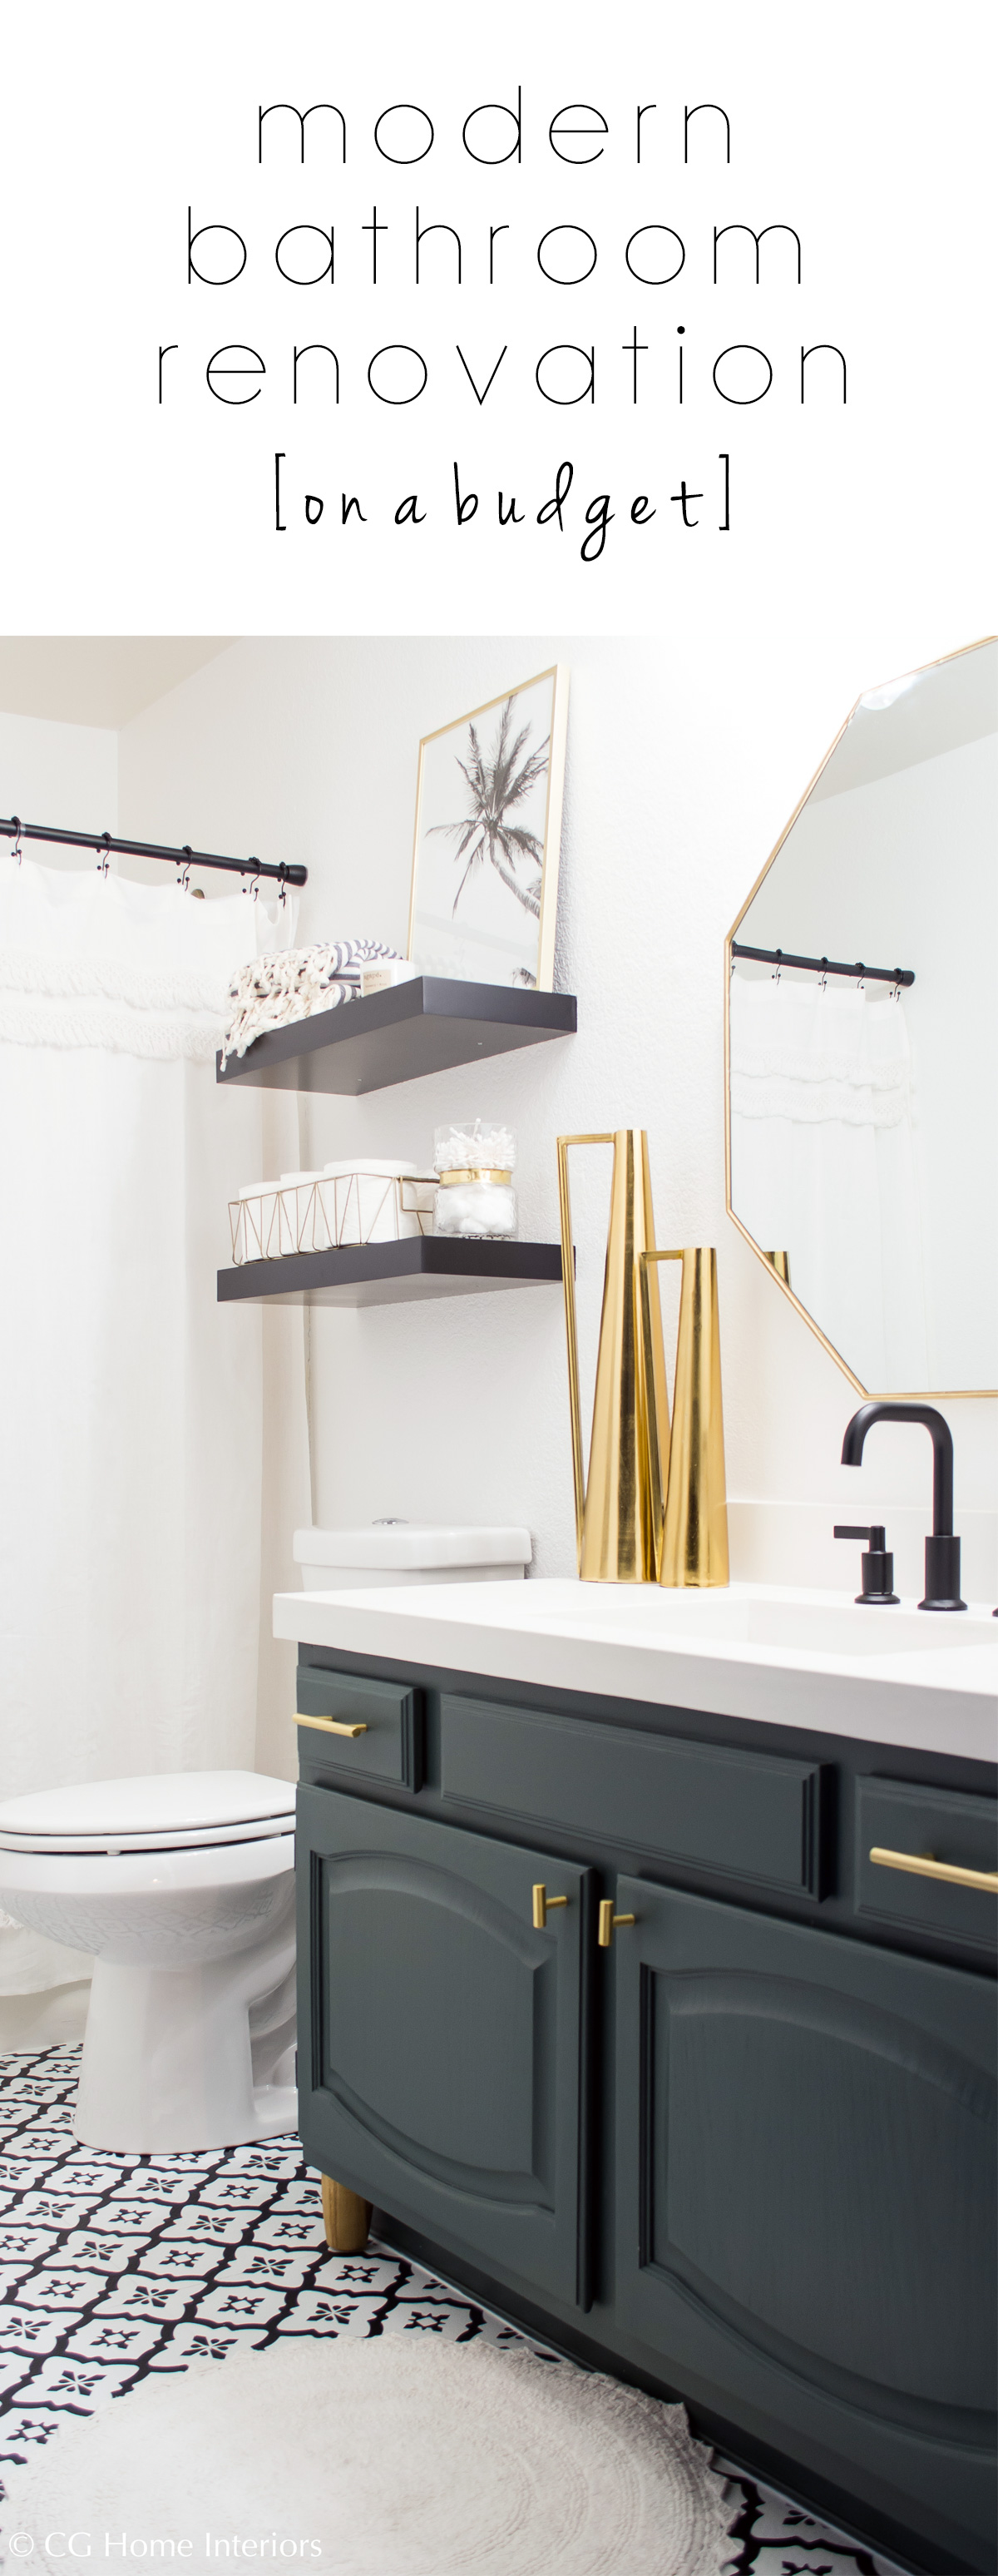 Pinterest Modern Guest Bathroom Renovation on a Budget – One Room Challenge REVEAL